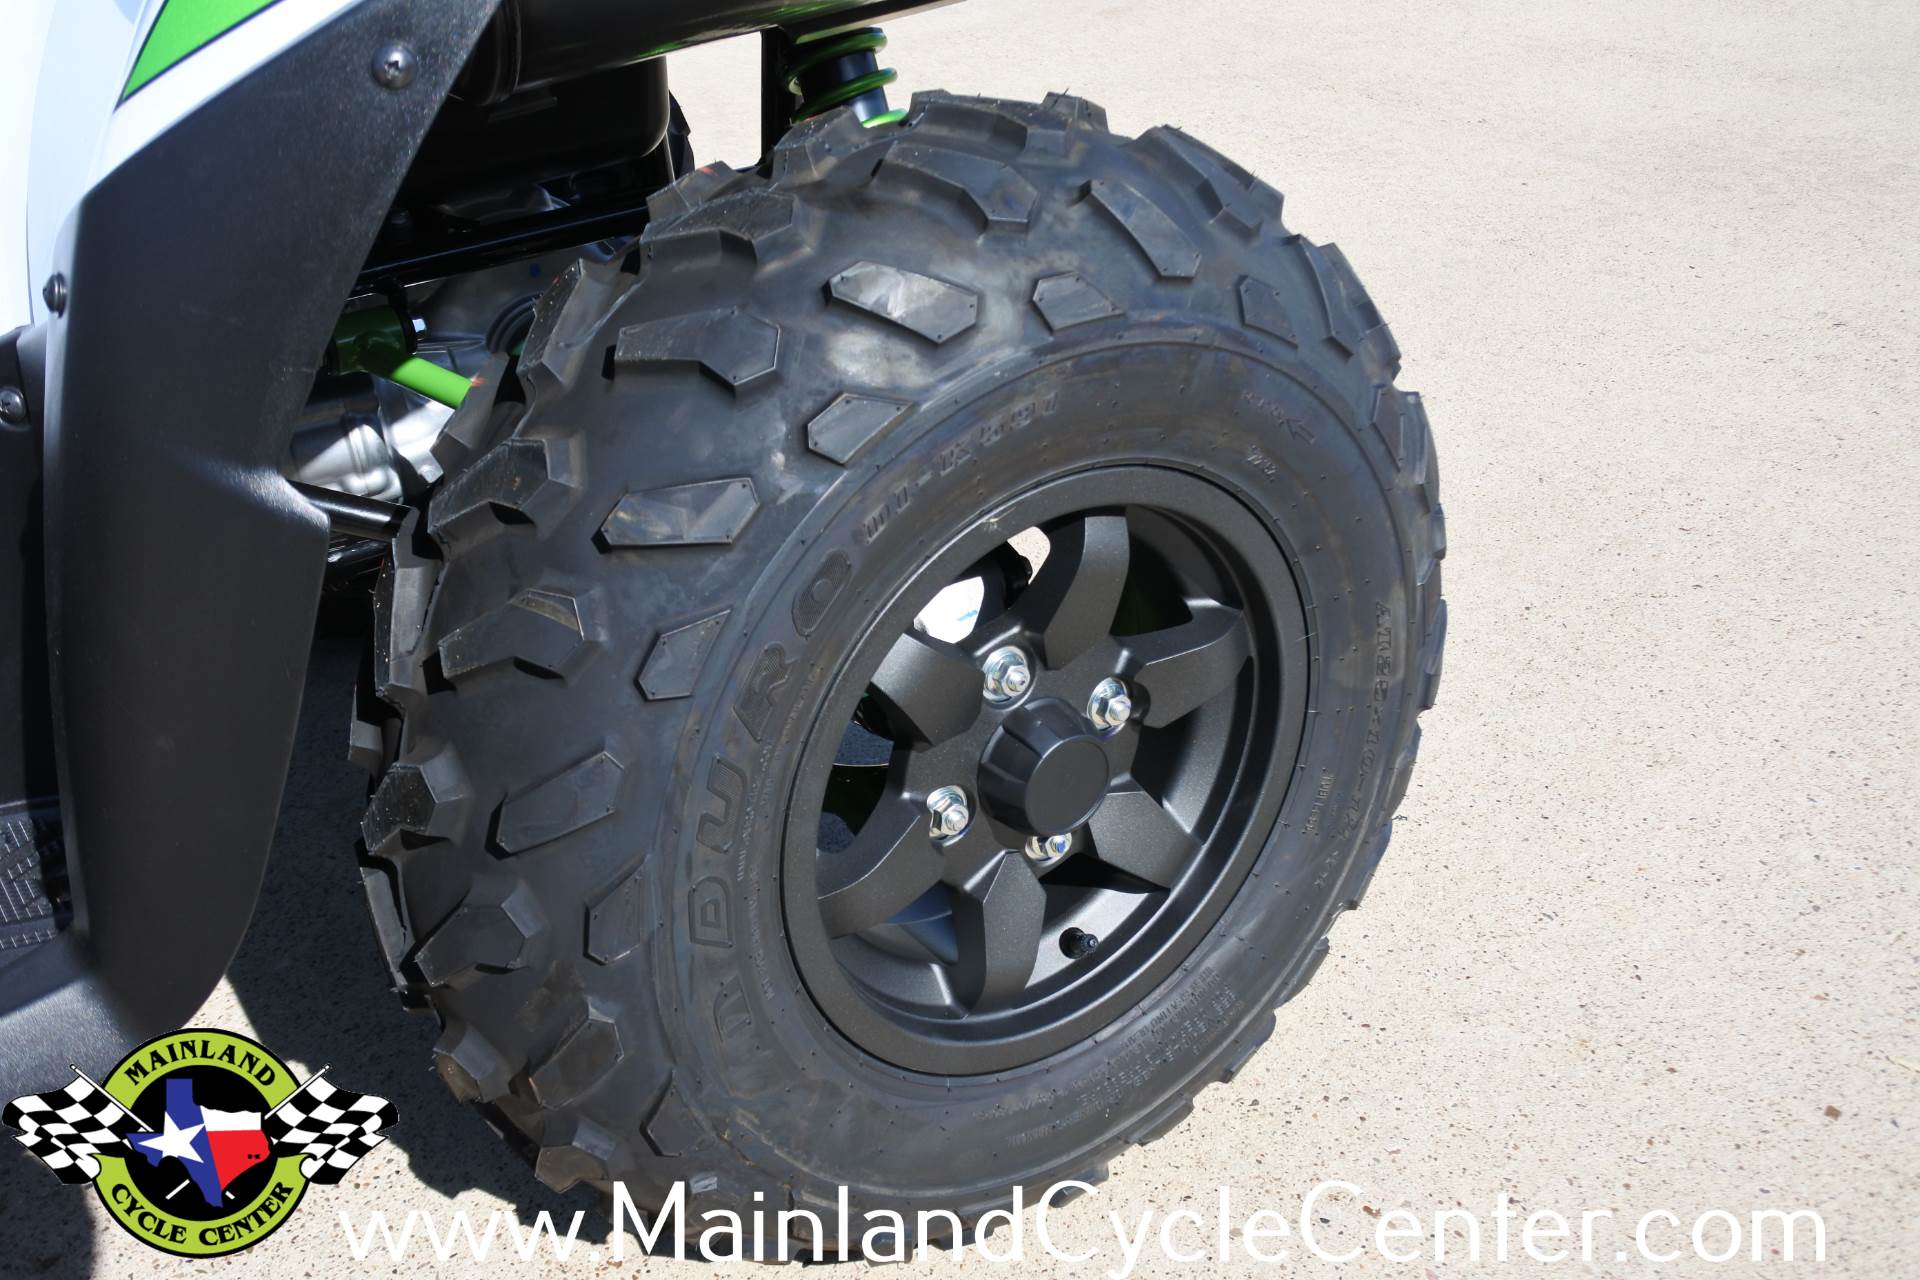 2018 Kawasaki Brute Force 750 4x4i EPS in La Marque, Texas - Photo 22